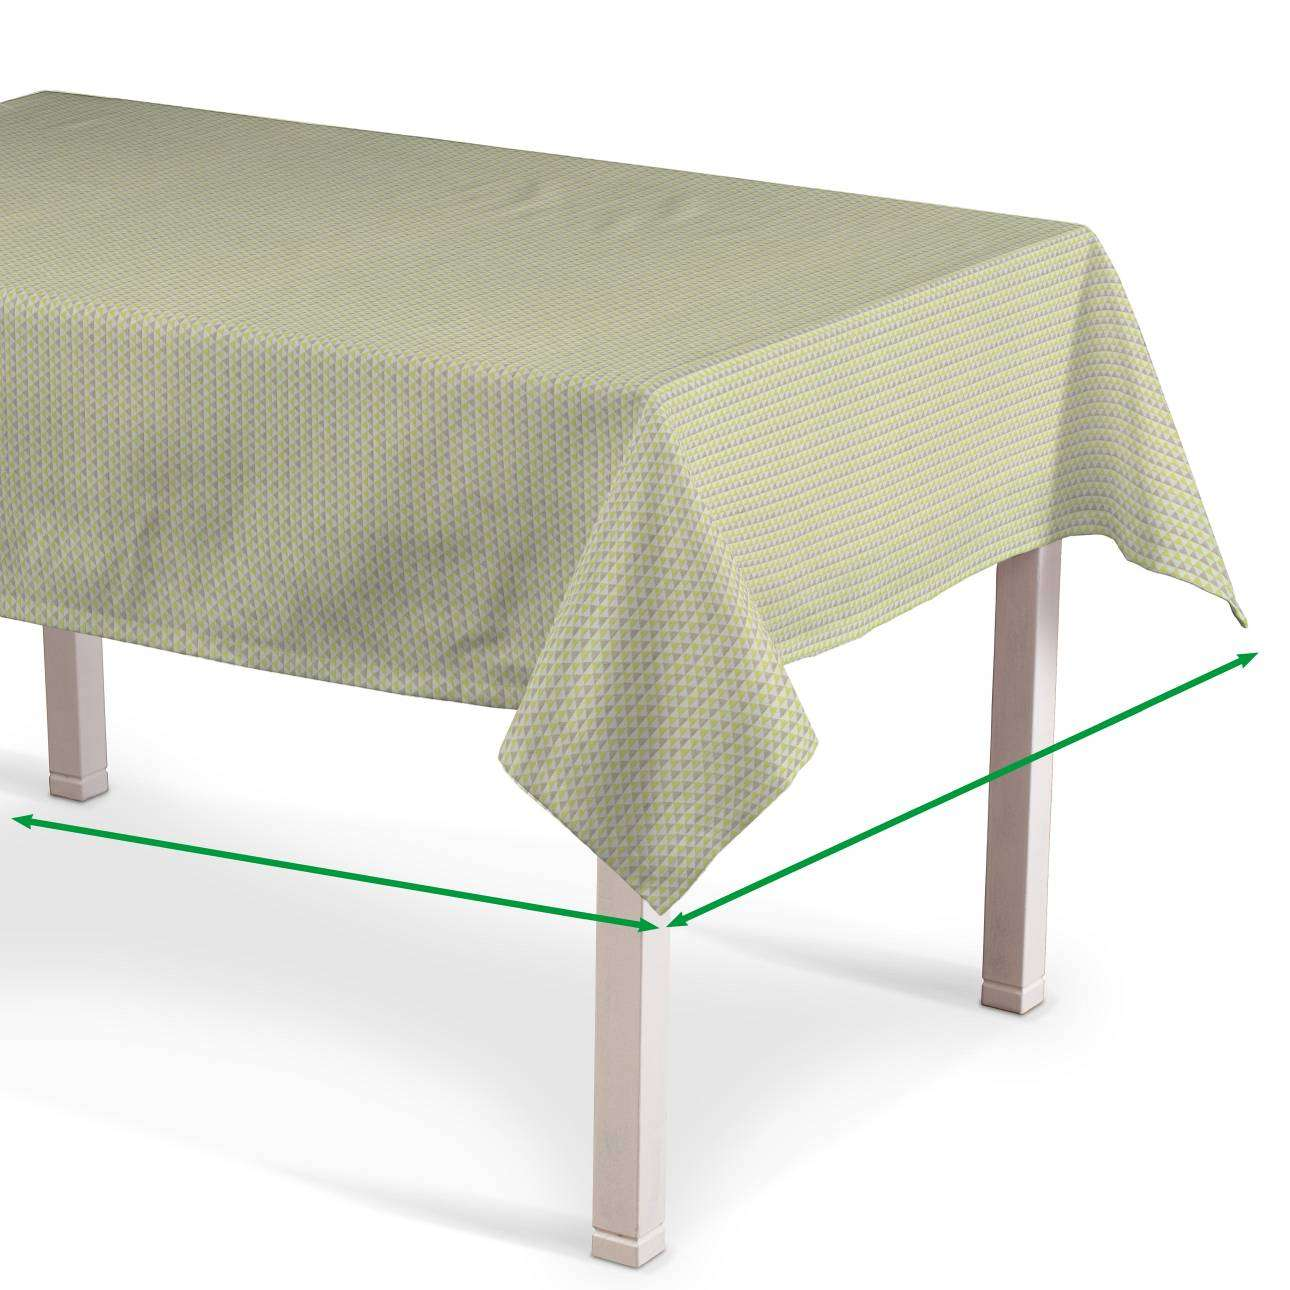 Rectangular tablecloth in collection Rustica, fabric: 140-34